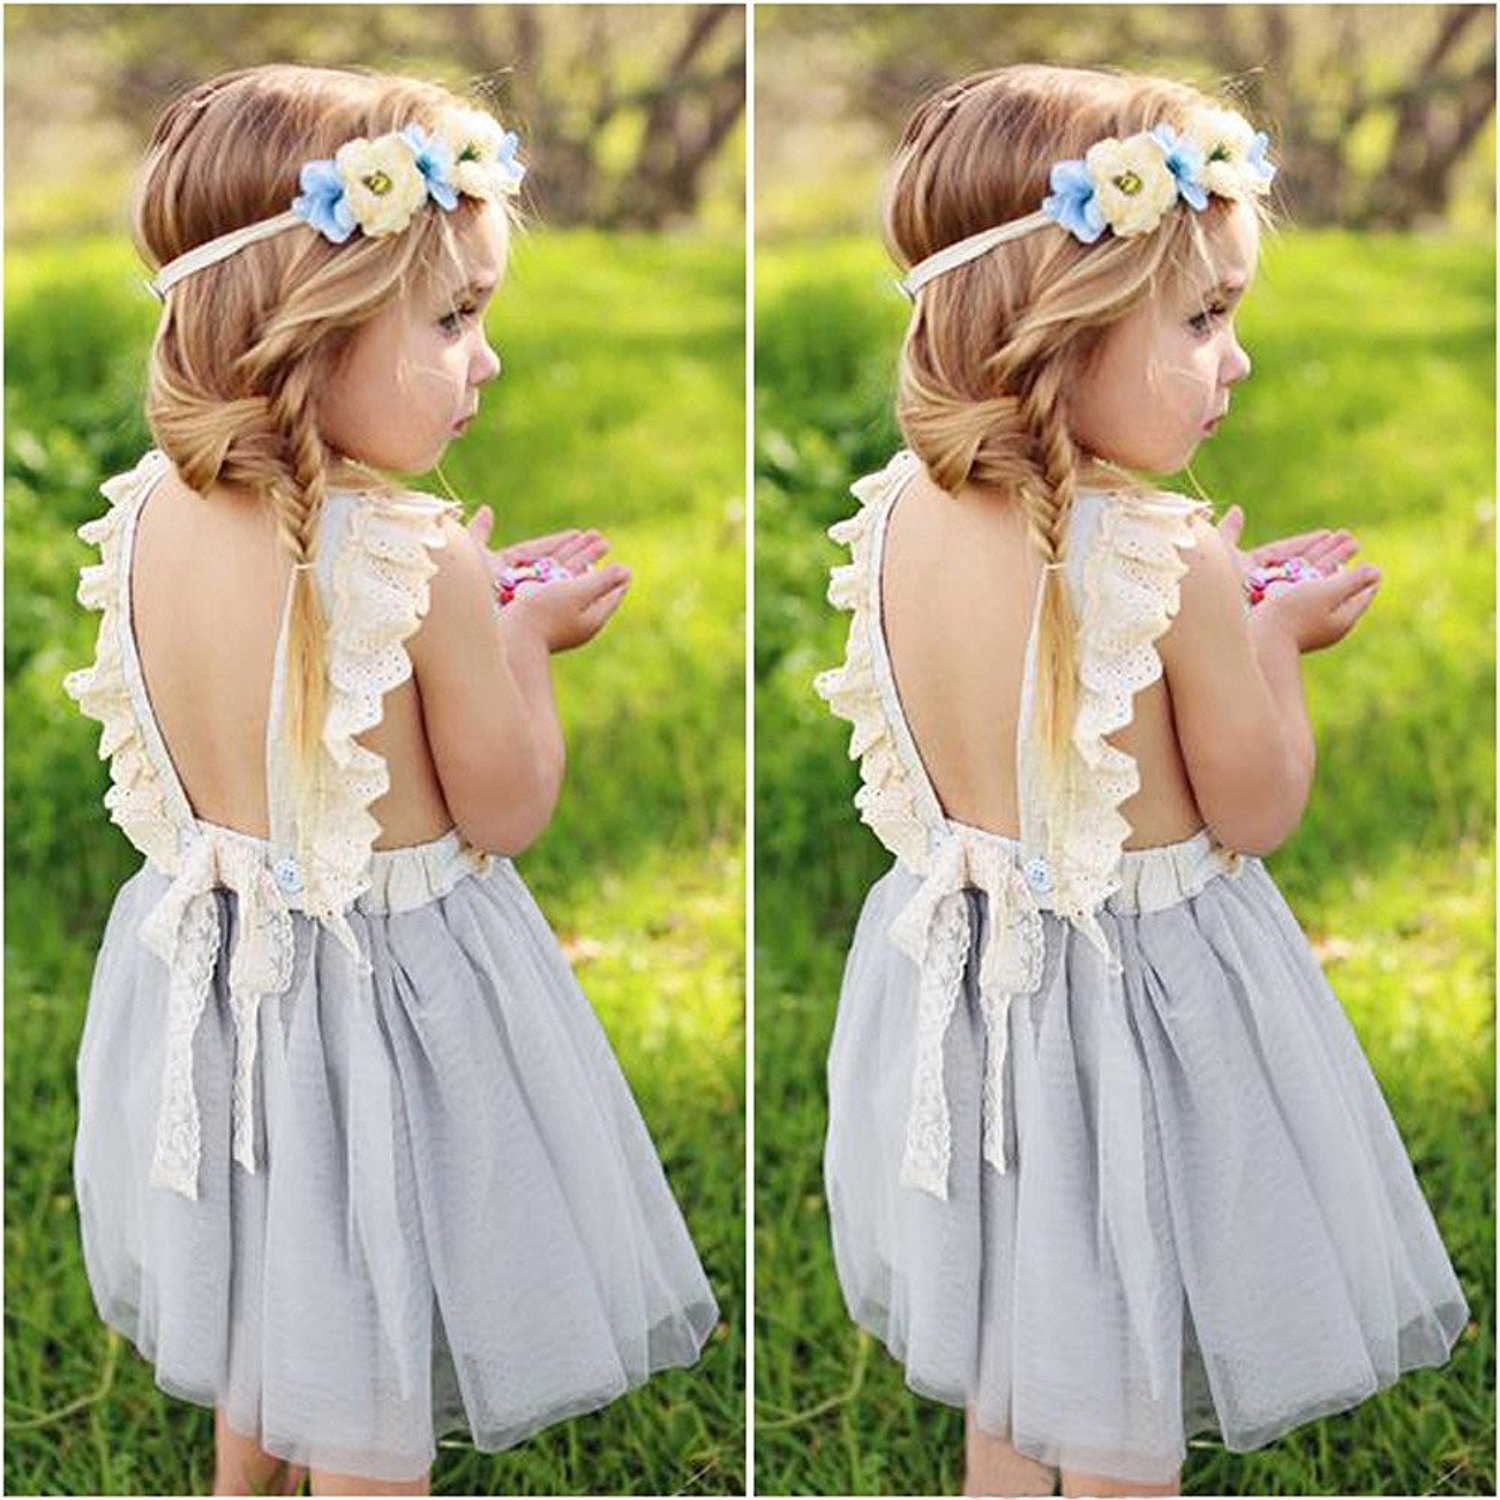 LOliSWan Little Girls Fairy Lace Princess Dress Ruffles Ballerina Tulle Tutu Toddlers Dress Up Outfits For Wedding Party (Gray, 3T) by LOliSWan (Image #2)